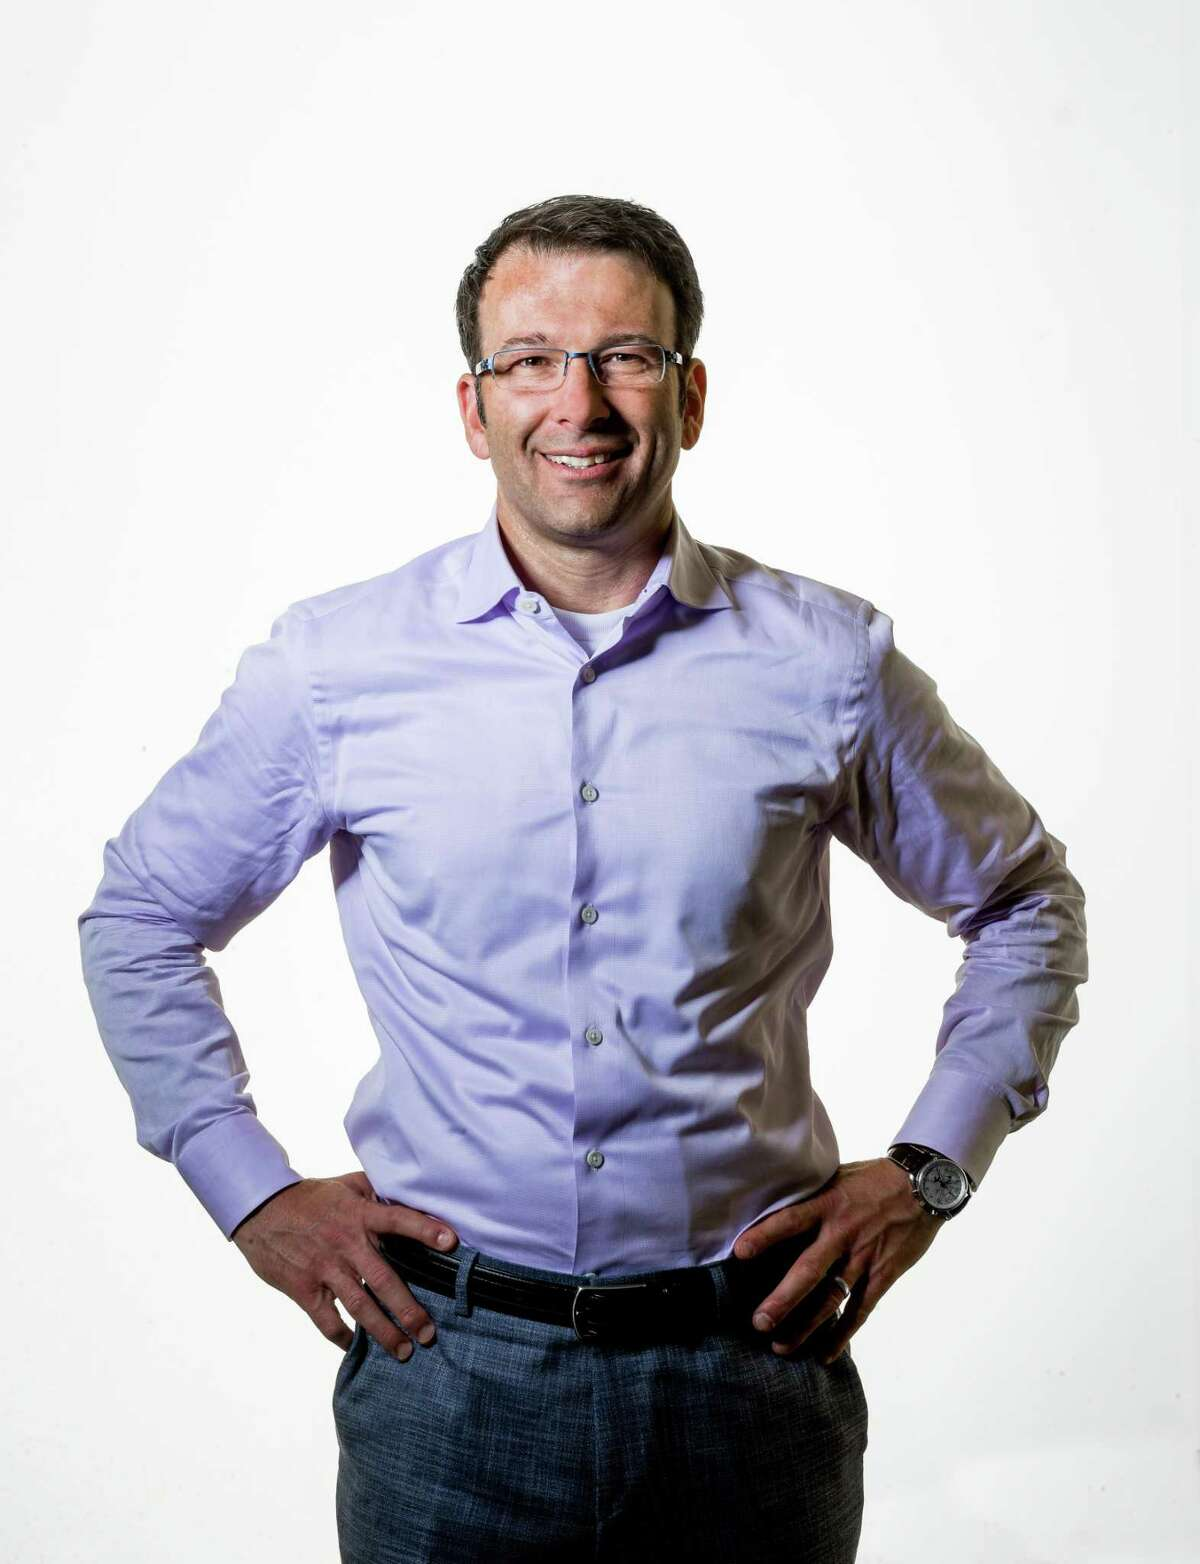 Judson Althoff is executive vice president of worldwide commercial business for tech giant Microsoft. The company signed an agreement with Houston oilfield service company Baker Hughes and Silicon Valley artificial intelligence company C3.ai to boost the adoption of artificial intelligence in the oil and natural gas industry.